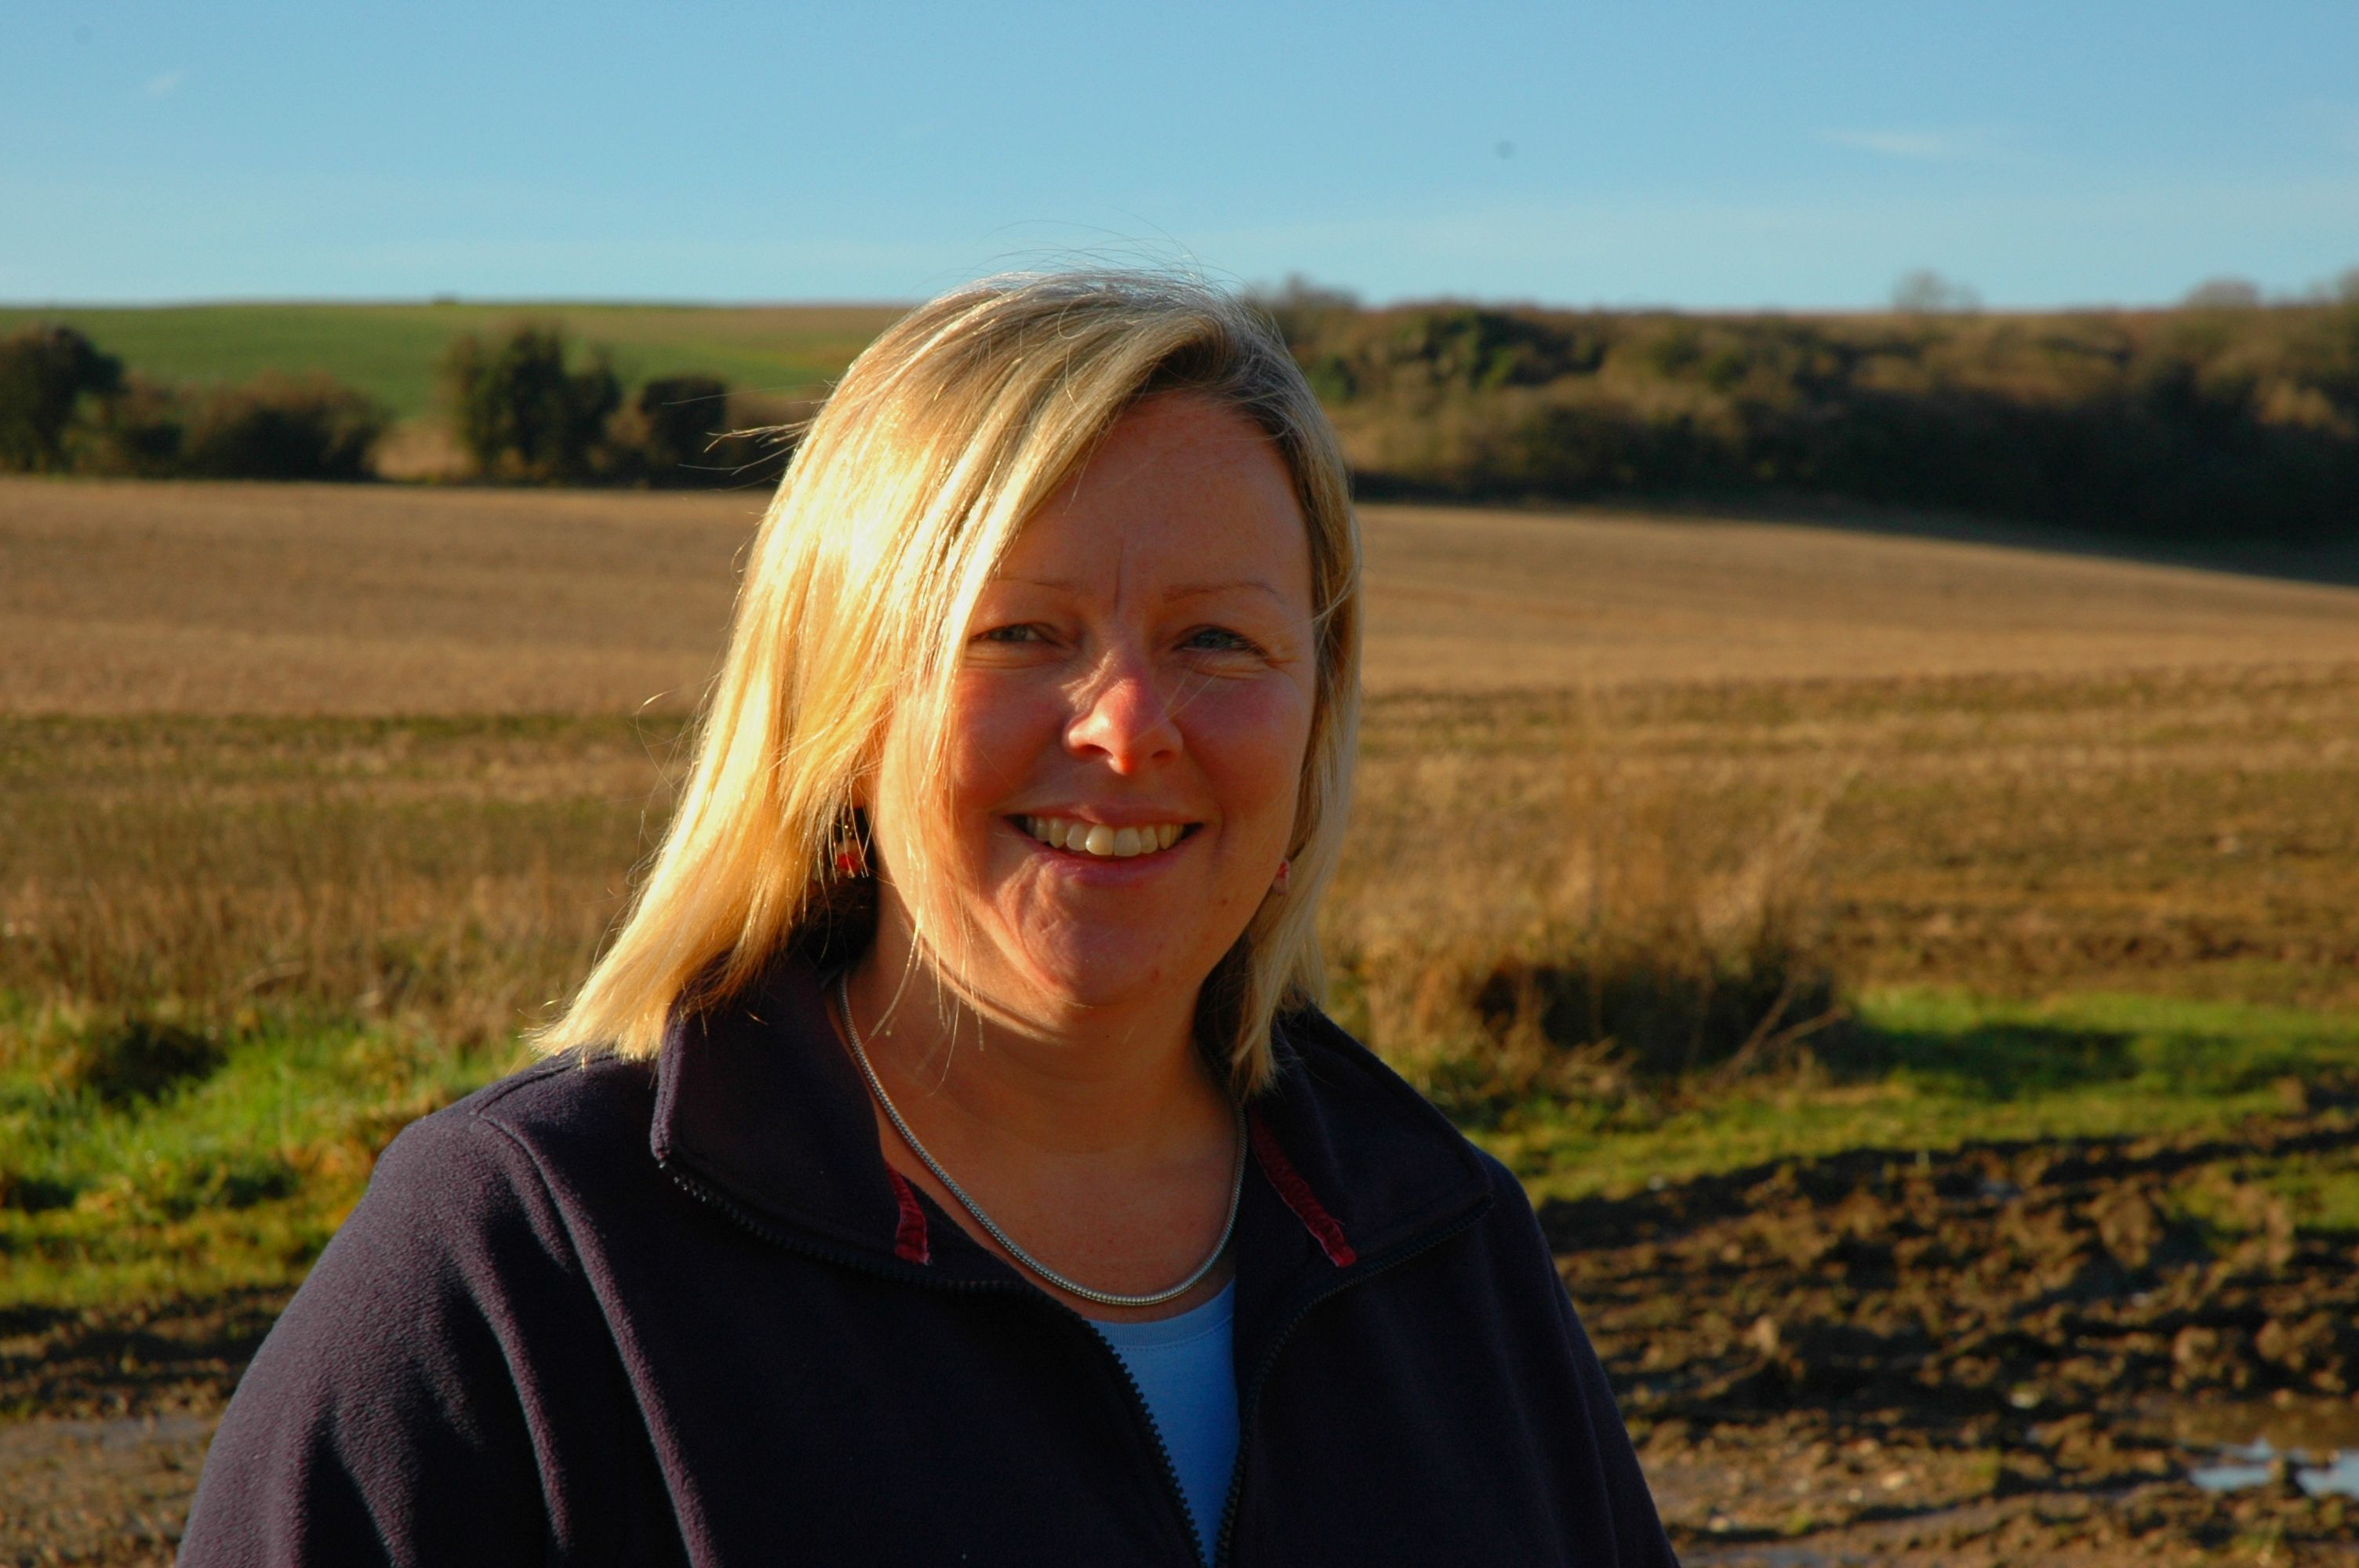 Nicky Caines (Area Sales Manager) http://globalherbs.co.uk/staff/sales-team/nicky-caines/